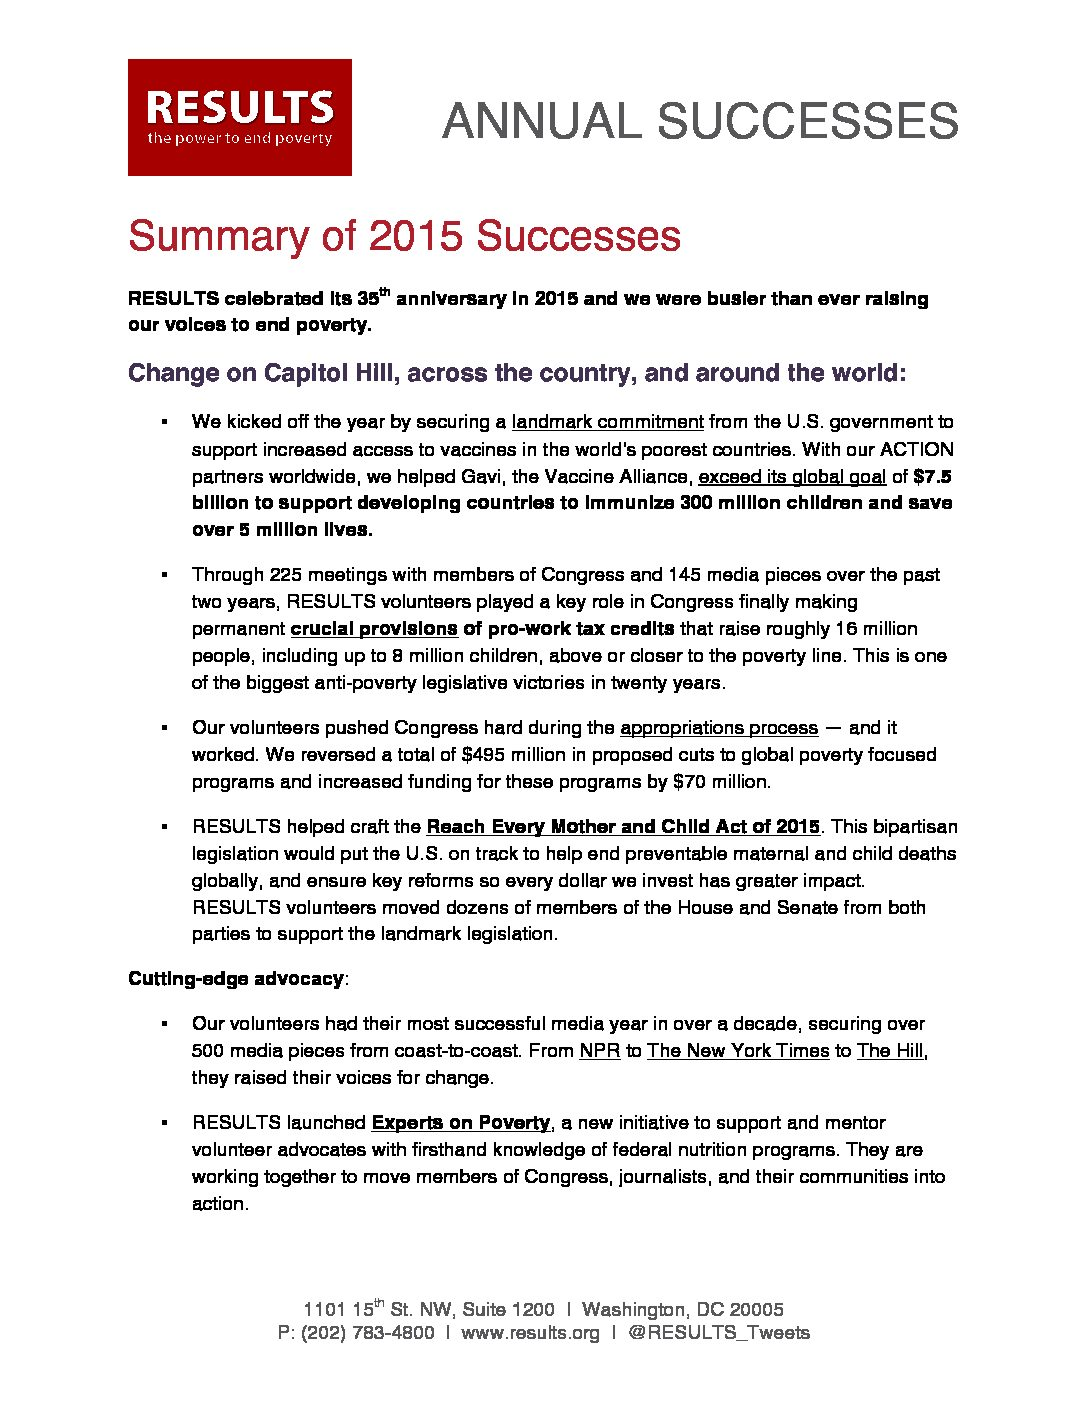 Annual Successes 2015